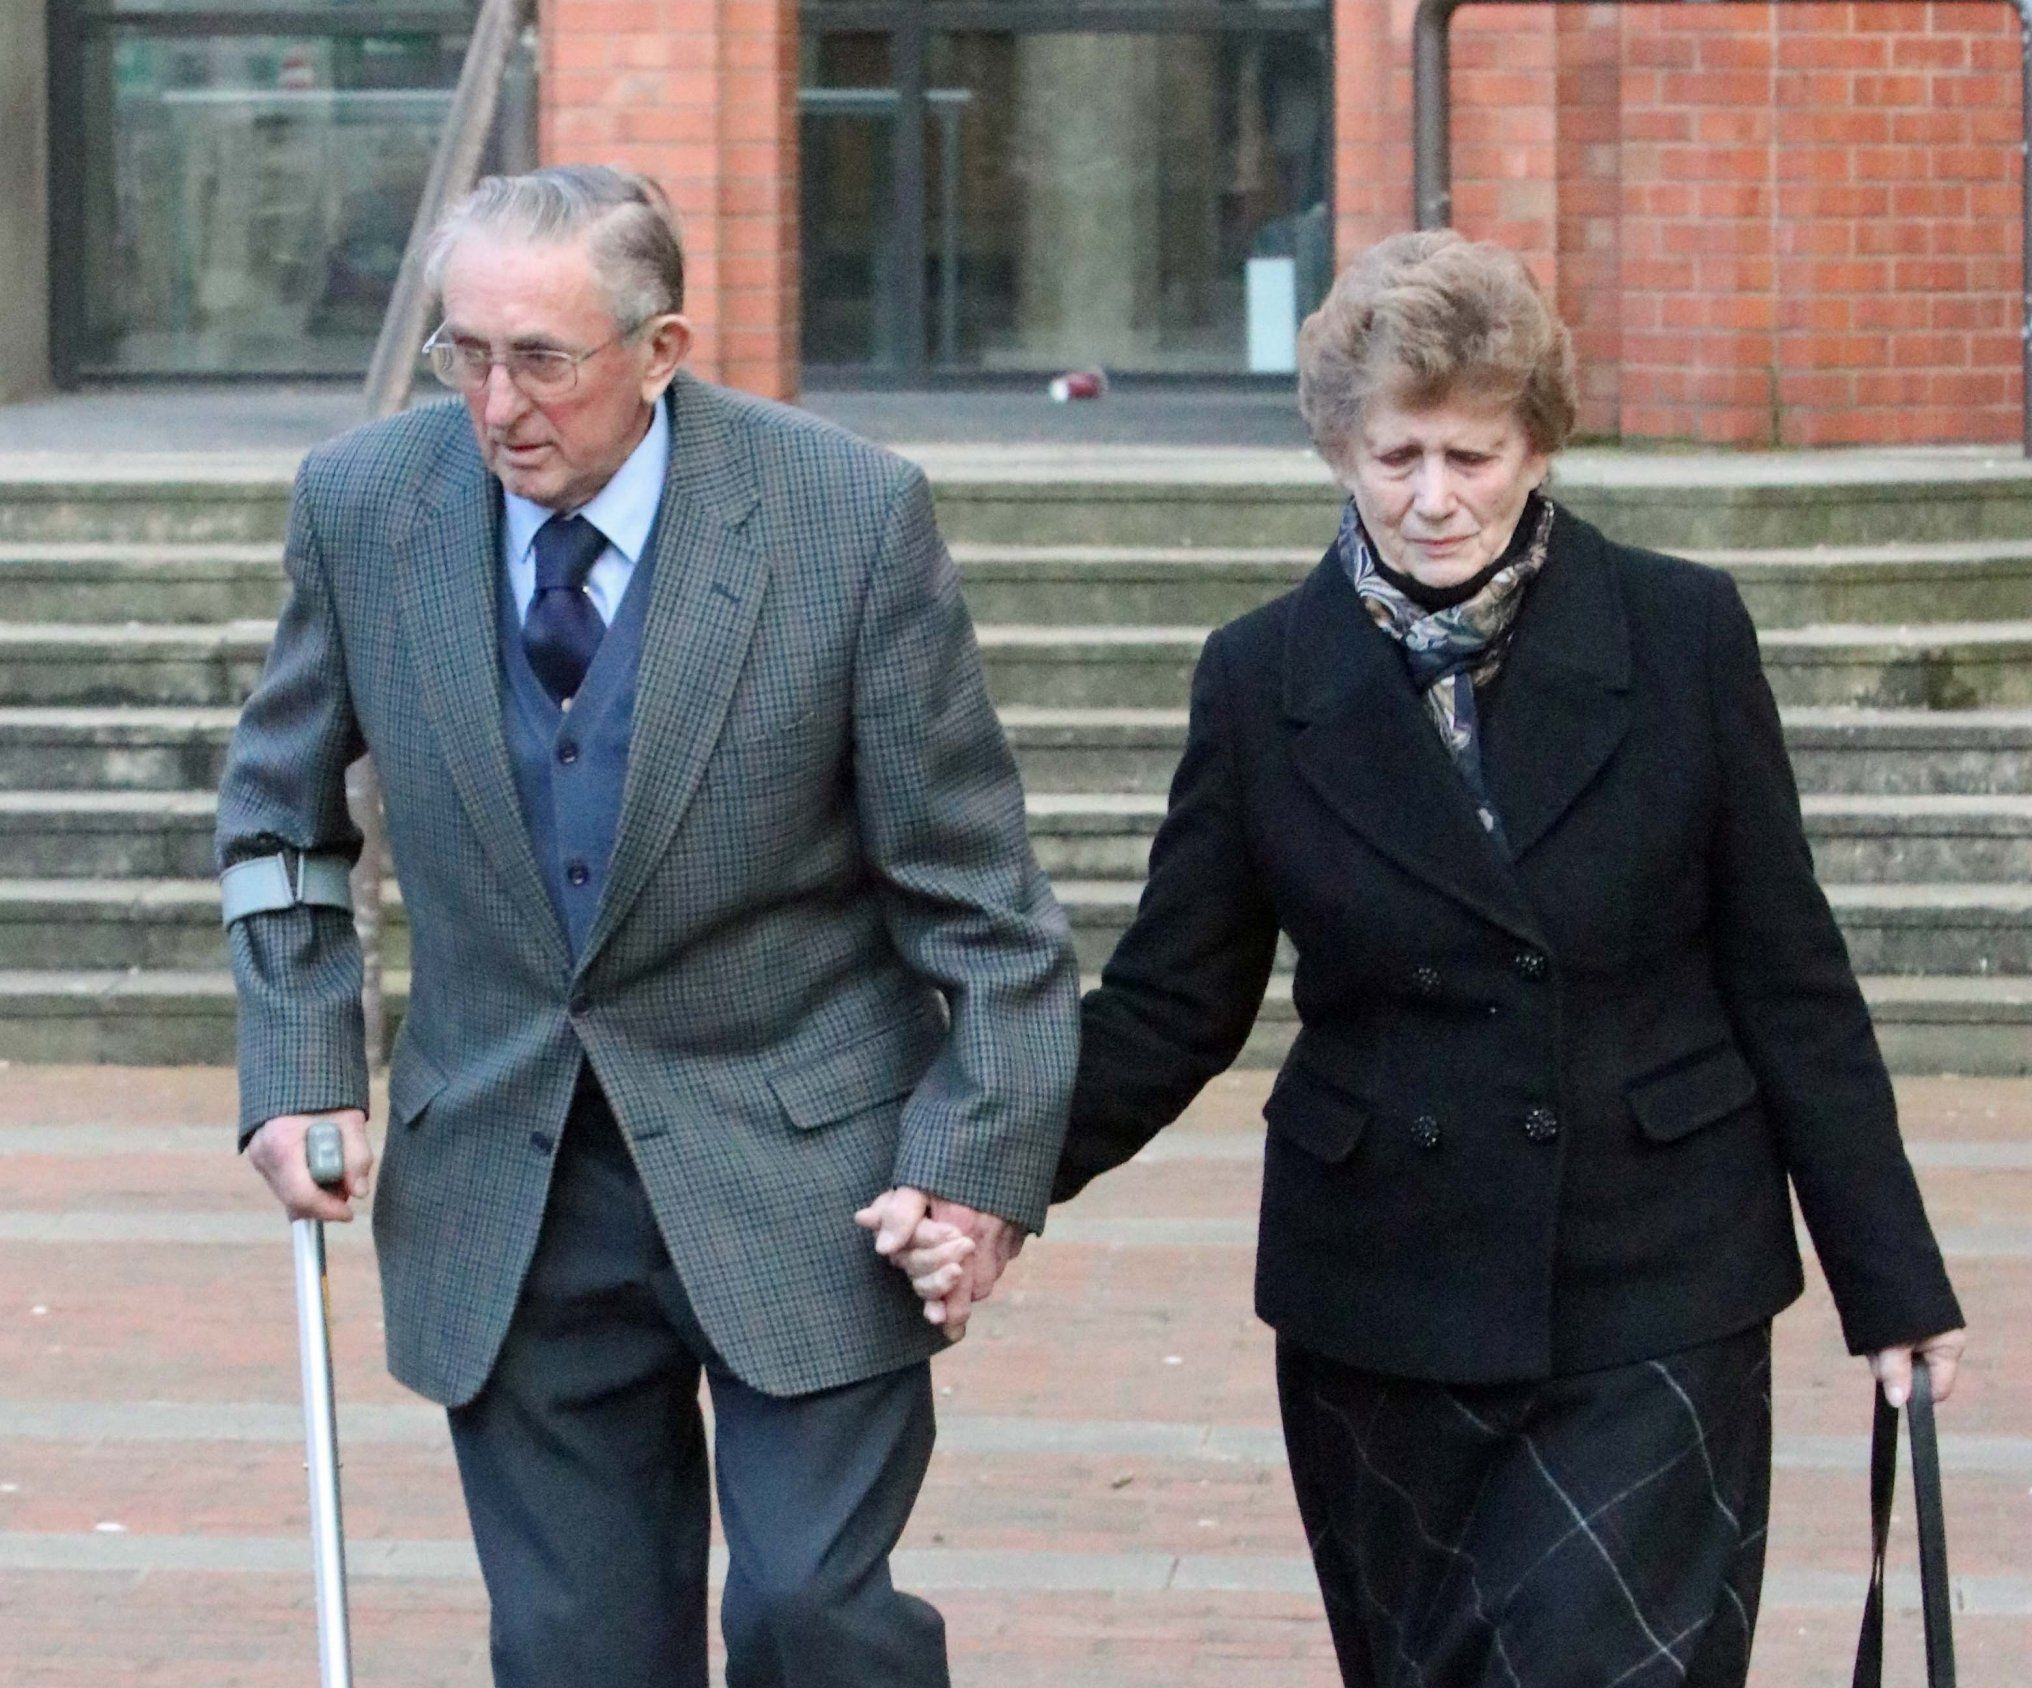 Fund launched to pay £30,000 legal bill of elderly farmer cleared of GBH